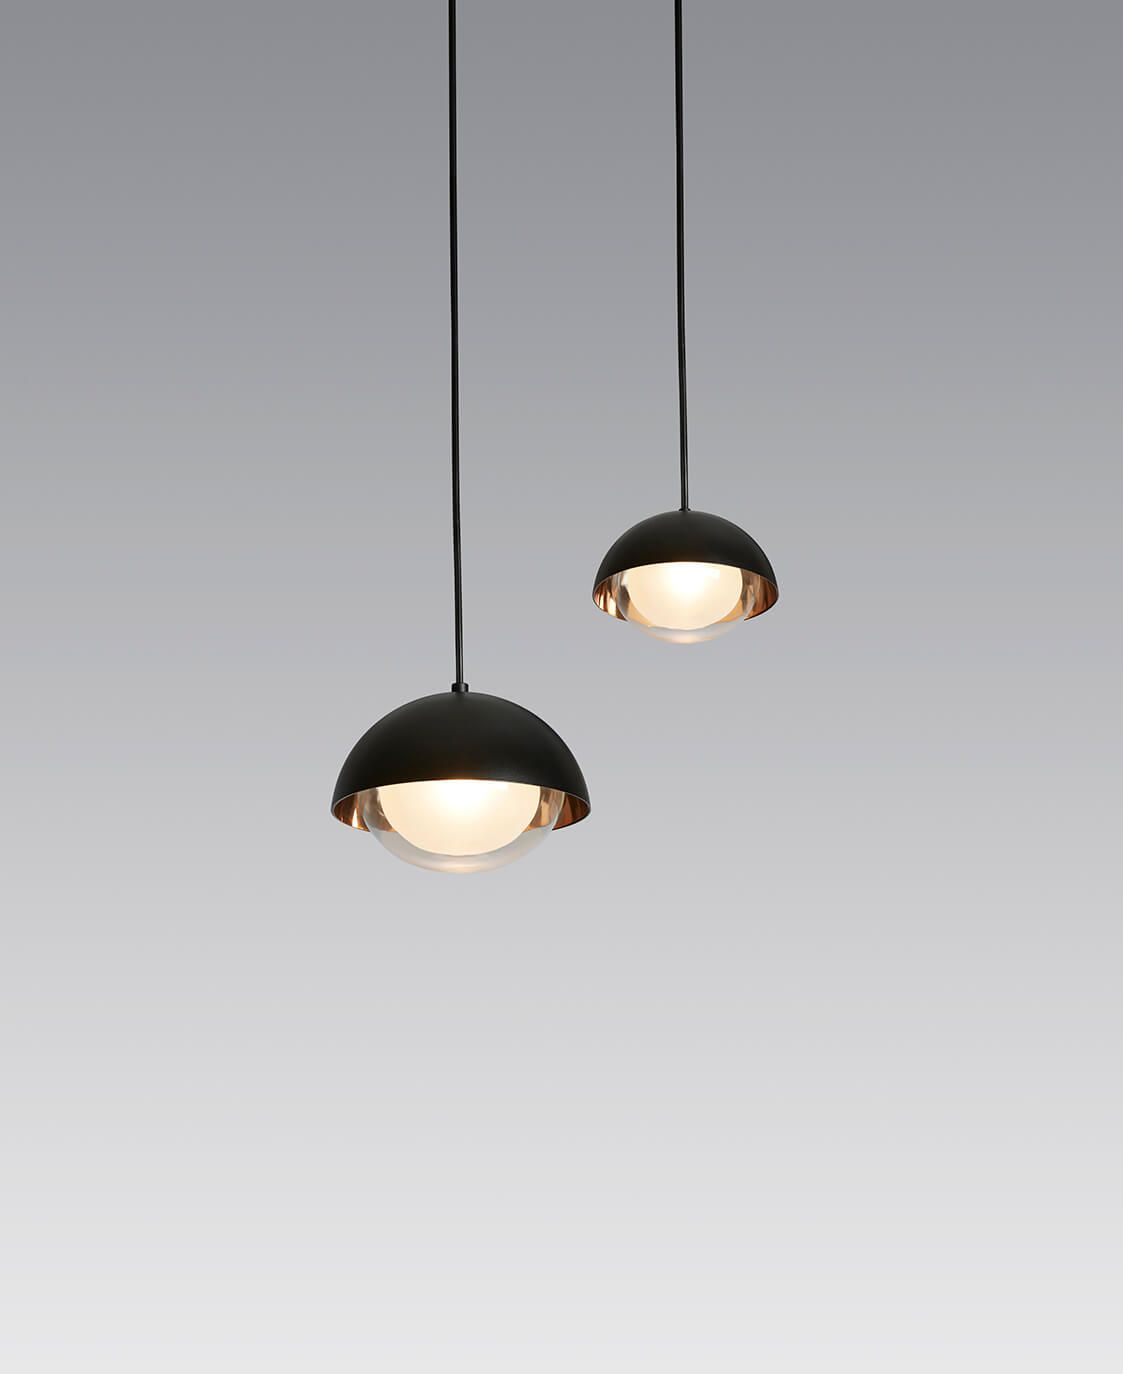 Muse Chandelier by Tooy | Available at Radiant Lighting & Muse Chandelier by Tooy | Available at Radiant Lighting | Radiant ...